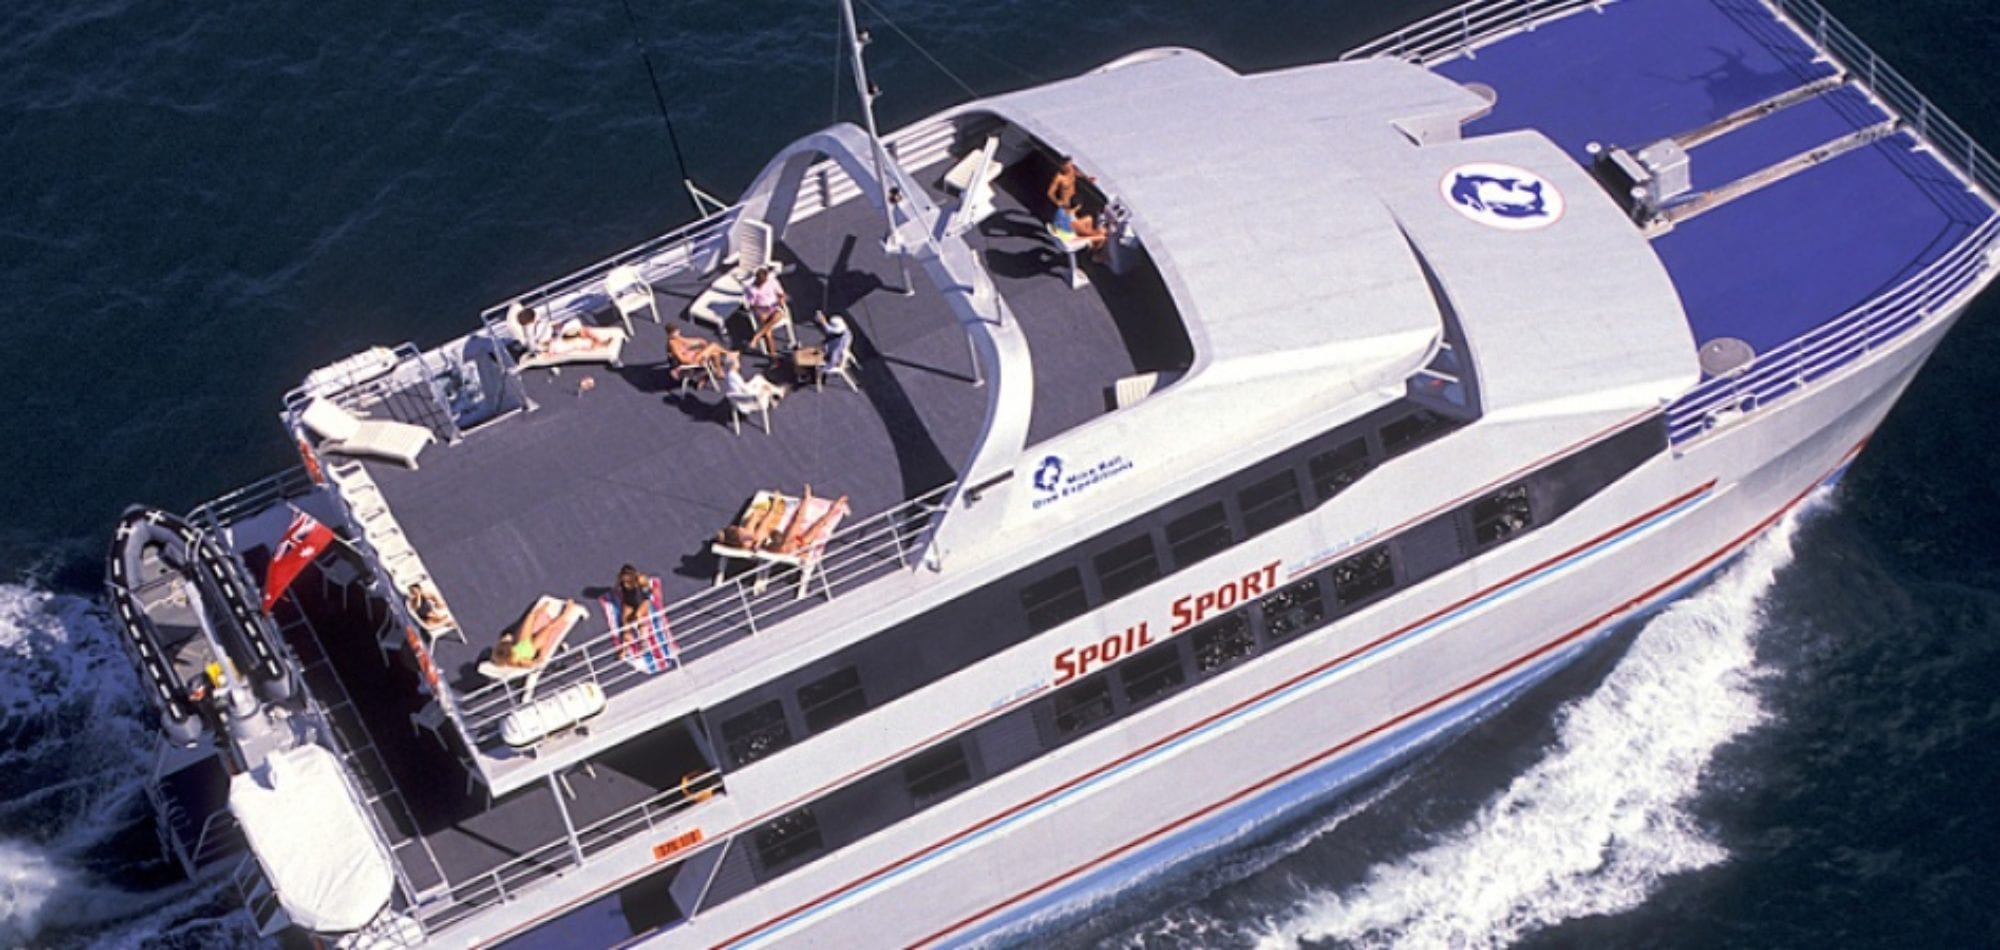 Scuba dive holiday in Australia - aerial image of Mike Ball 3 cruising vessell